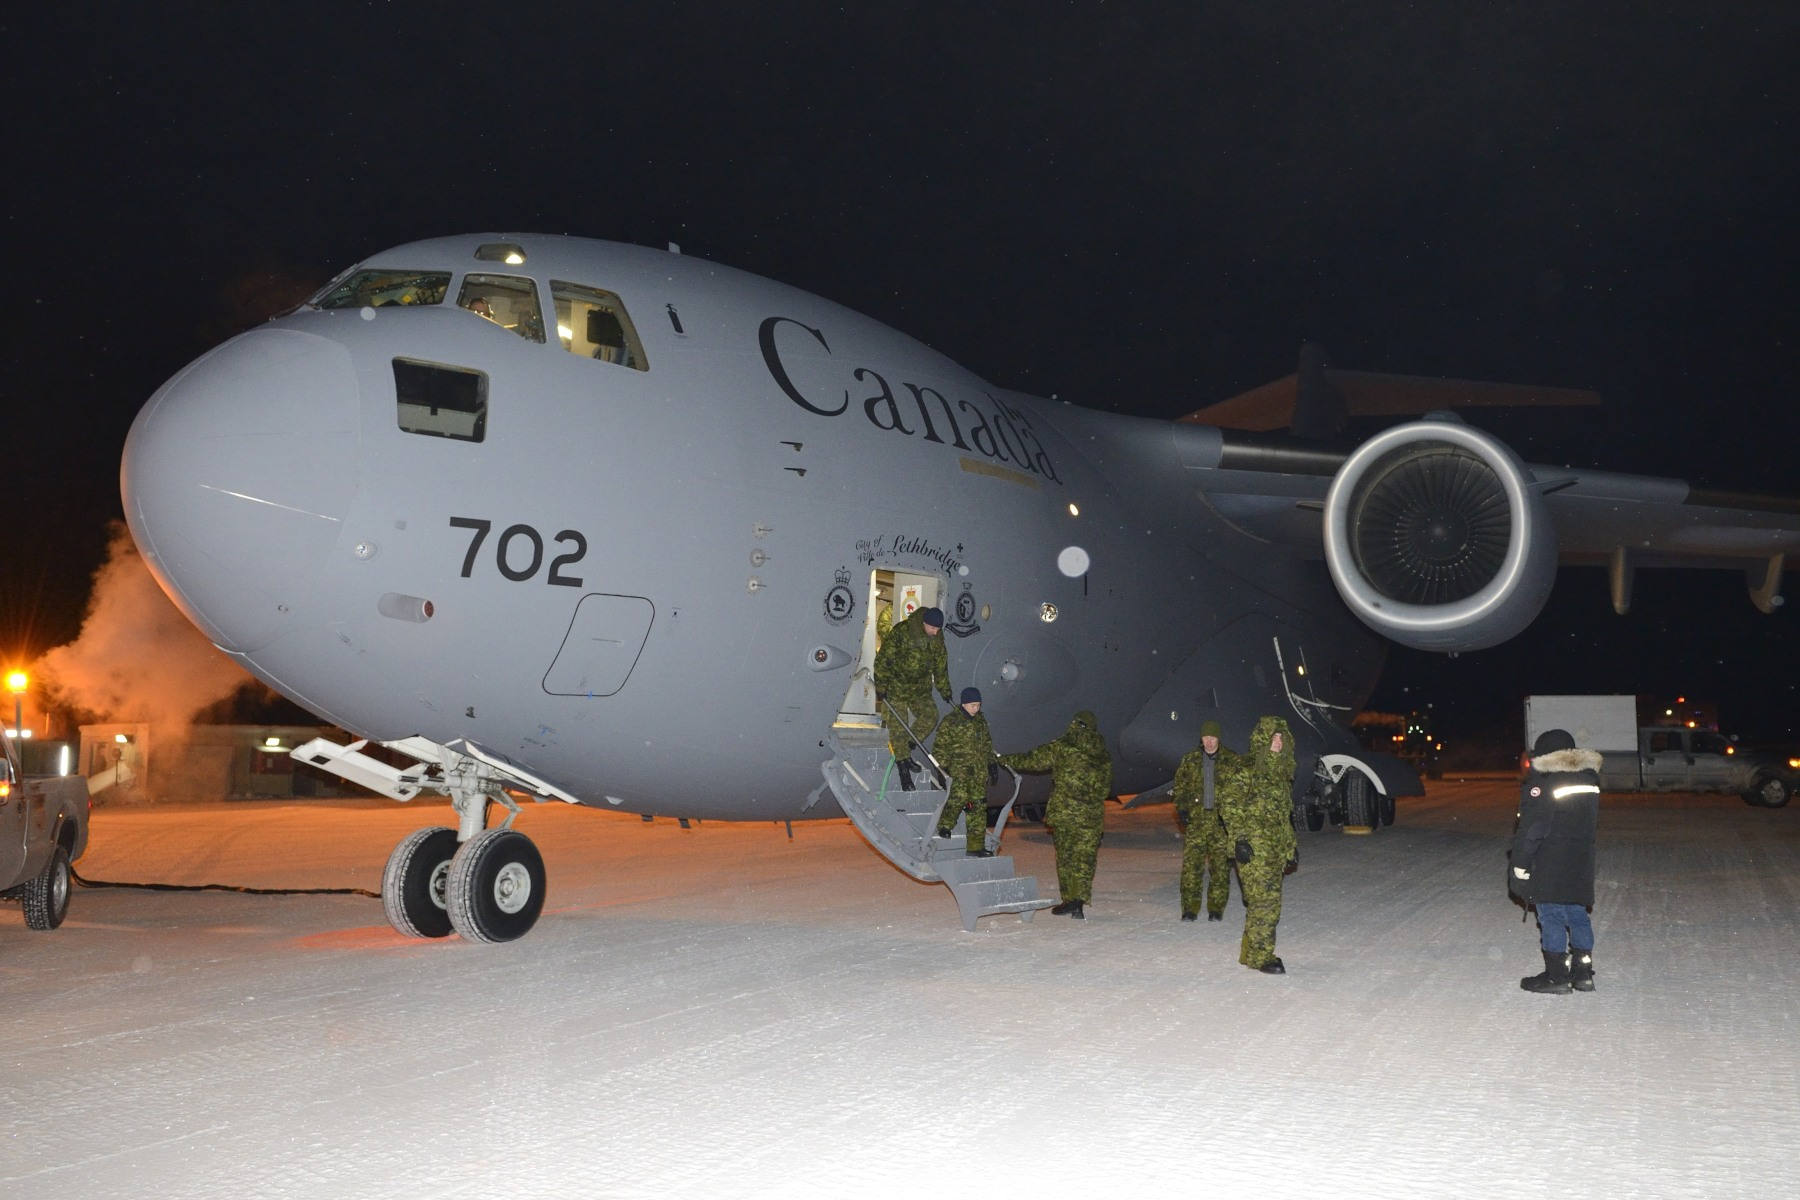 The Governor General and Commander-in-Chief of Canada visited Canadian Armed Forces (CAF) members and civilians at Canadian Forces Station (CFS) Alert, Canada's most northerly military installation, on January 19 and 20, 2015.